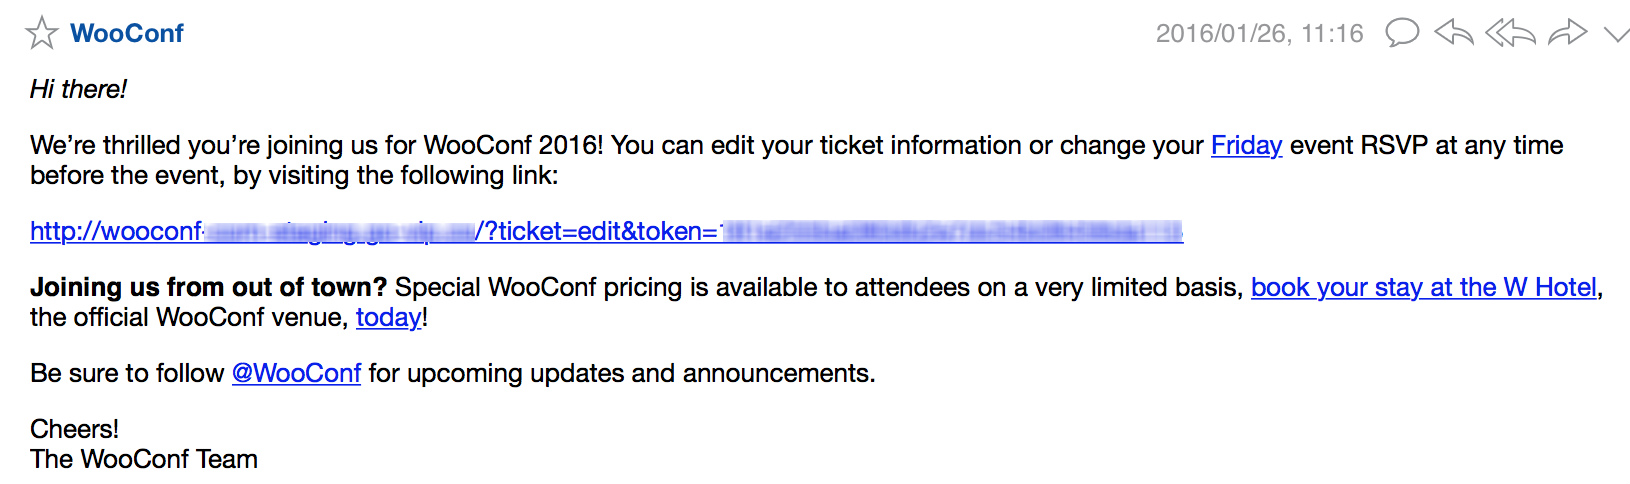 Ticket email caption